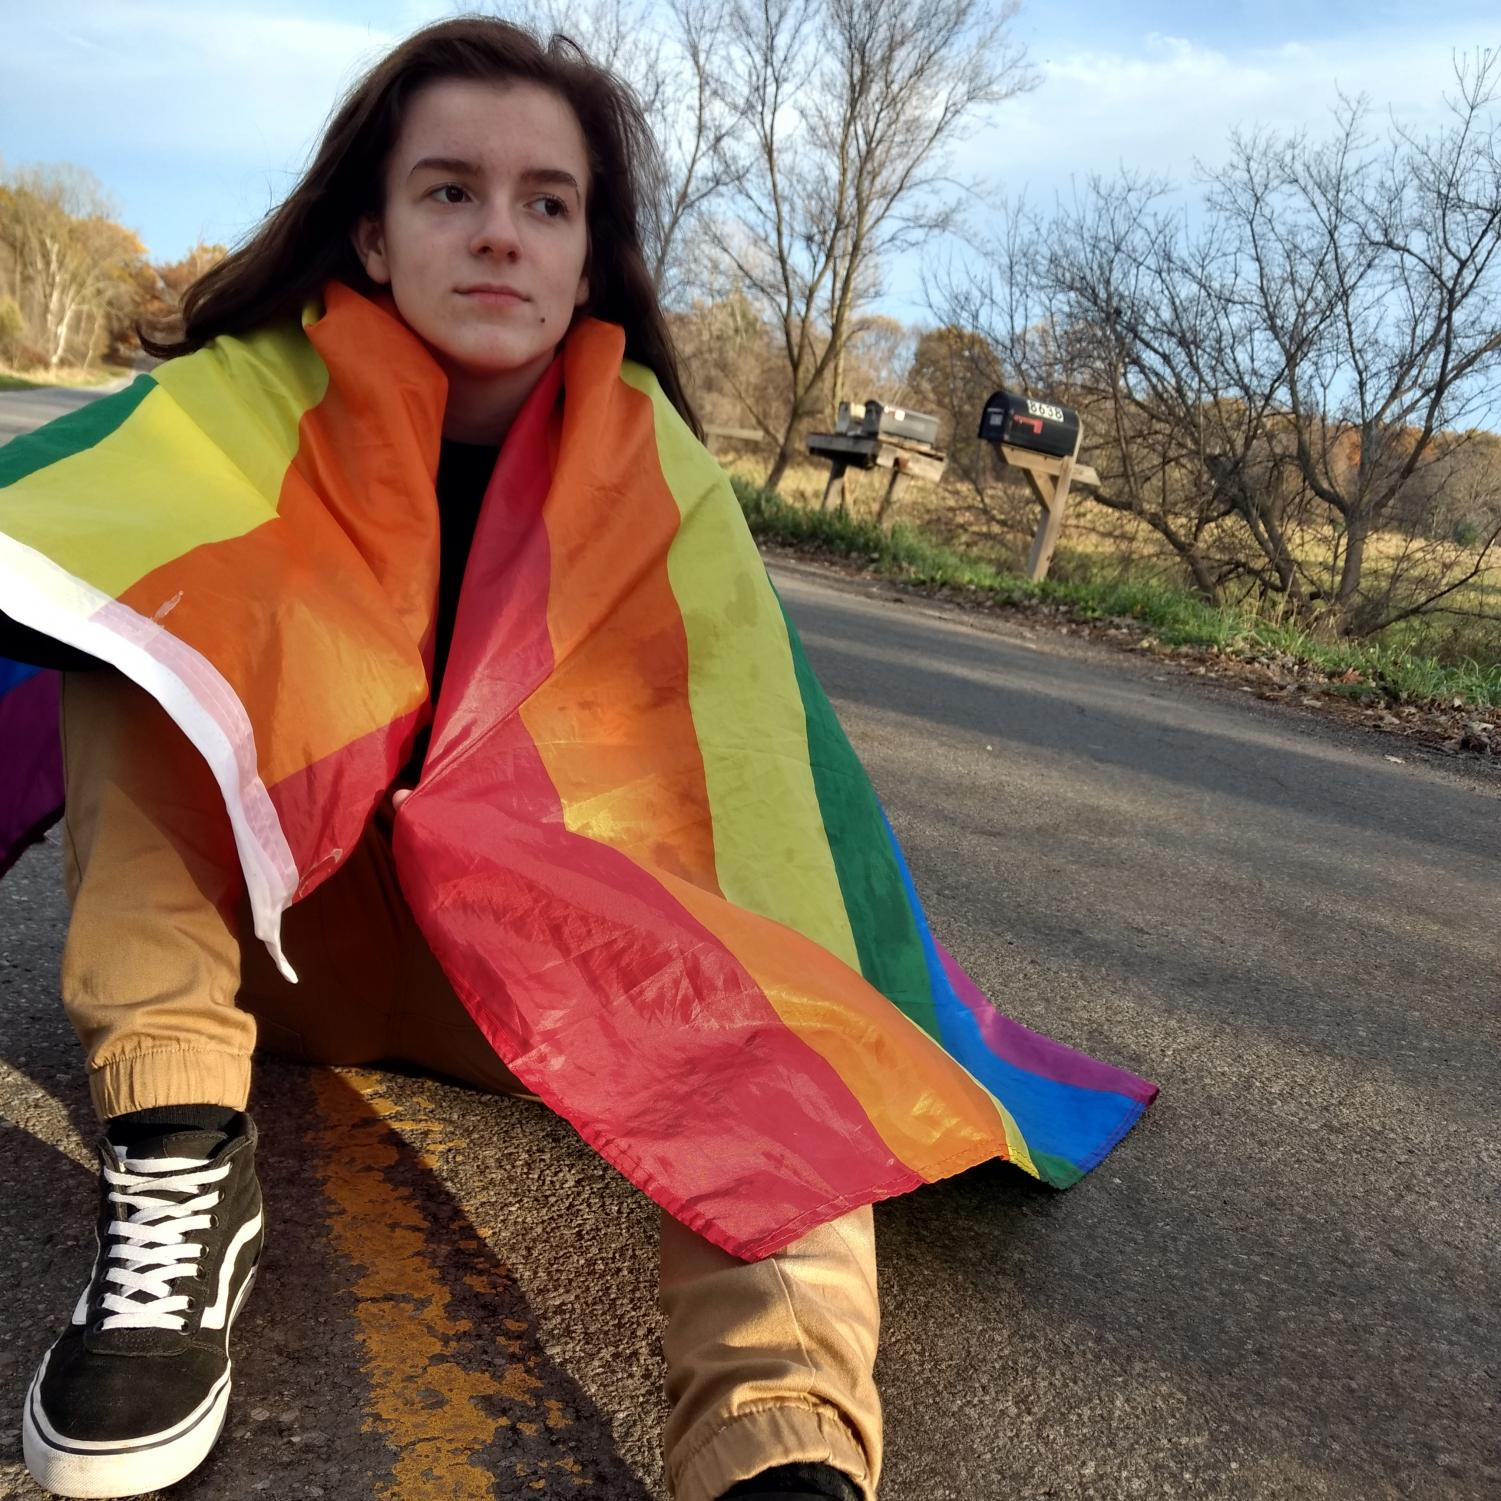 """The GSA makes me feel more supported and valid because the other members make me realize i'm not alone,"" sophomore Melanie Eskew said. She came out in 2017 and described not exactly feeling supported or valid, but does now with the support of this group."